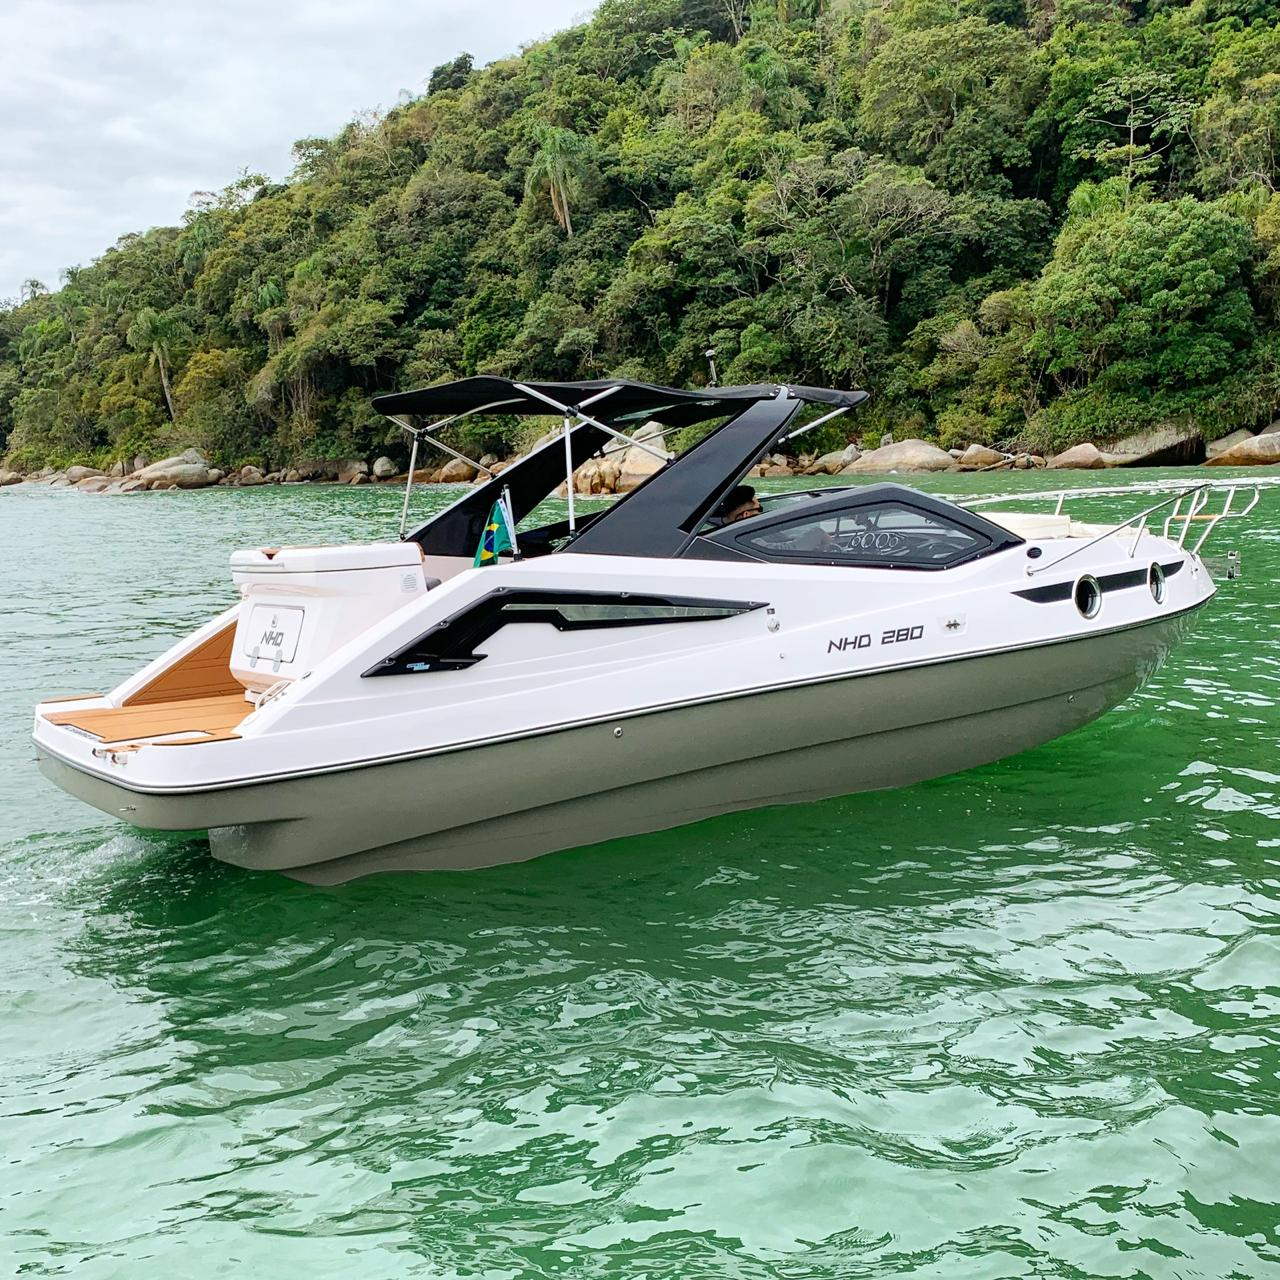 New HD Boats NHD 280 COTA COMPARTILHADA